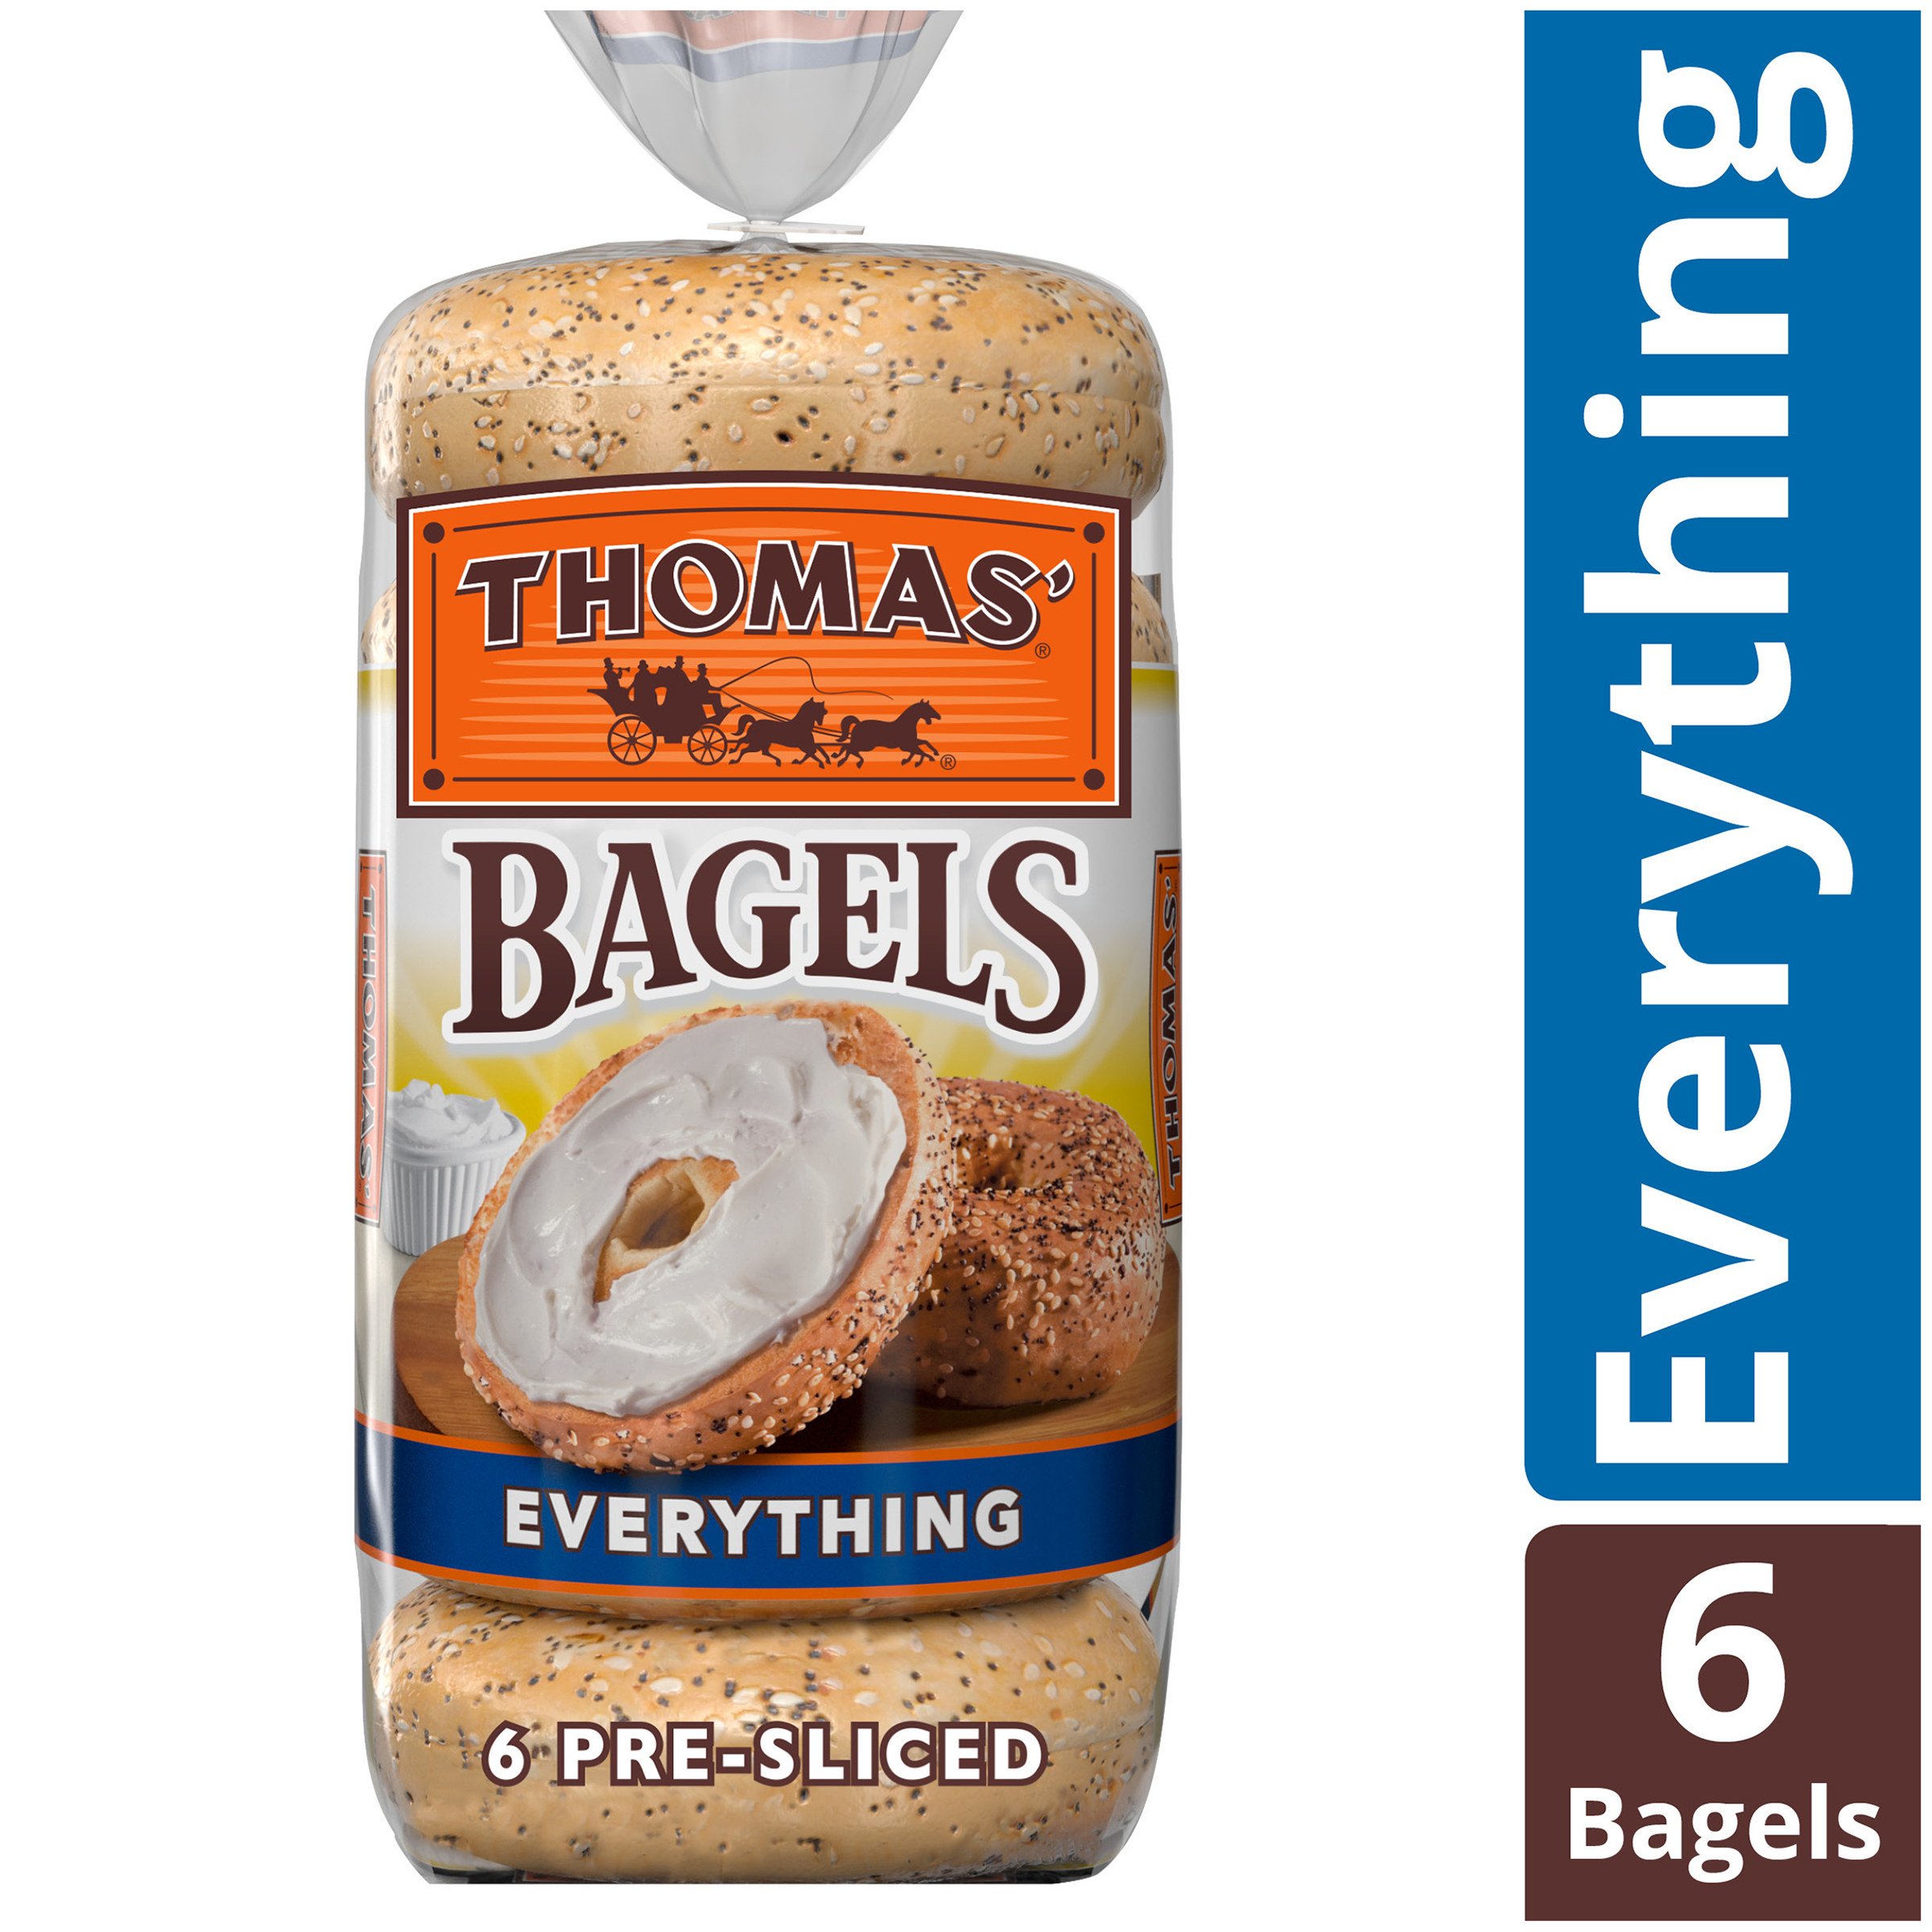 6 pack of pre-sliced Thomas everything bagels